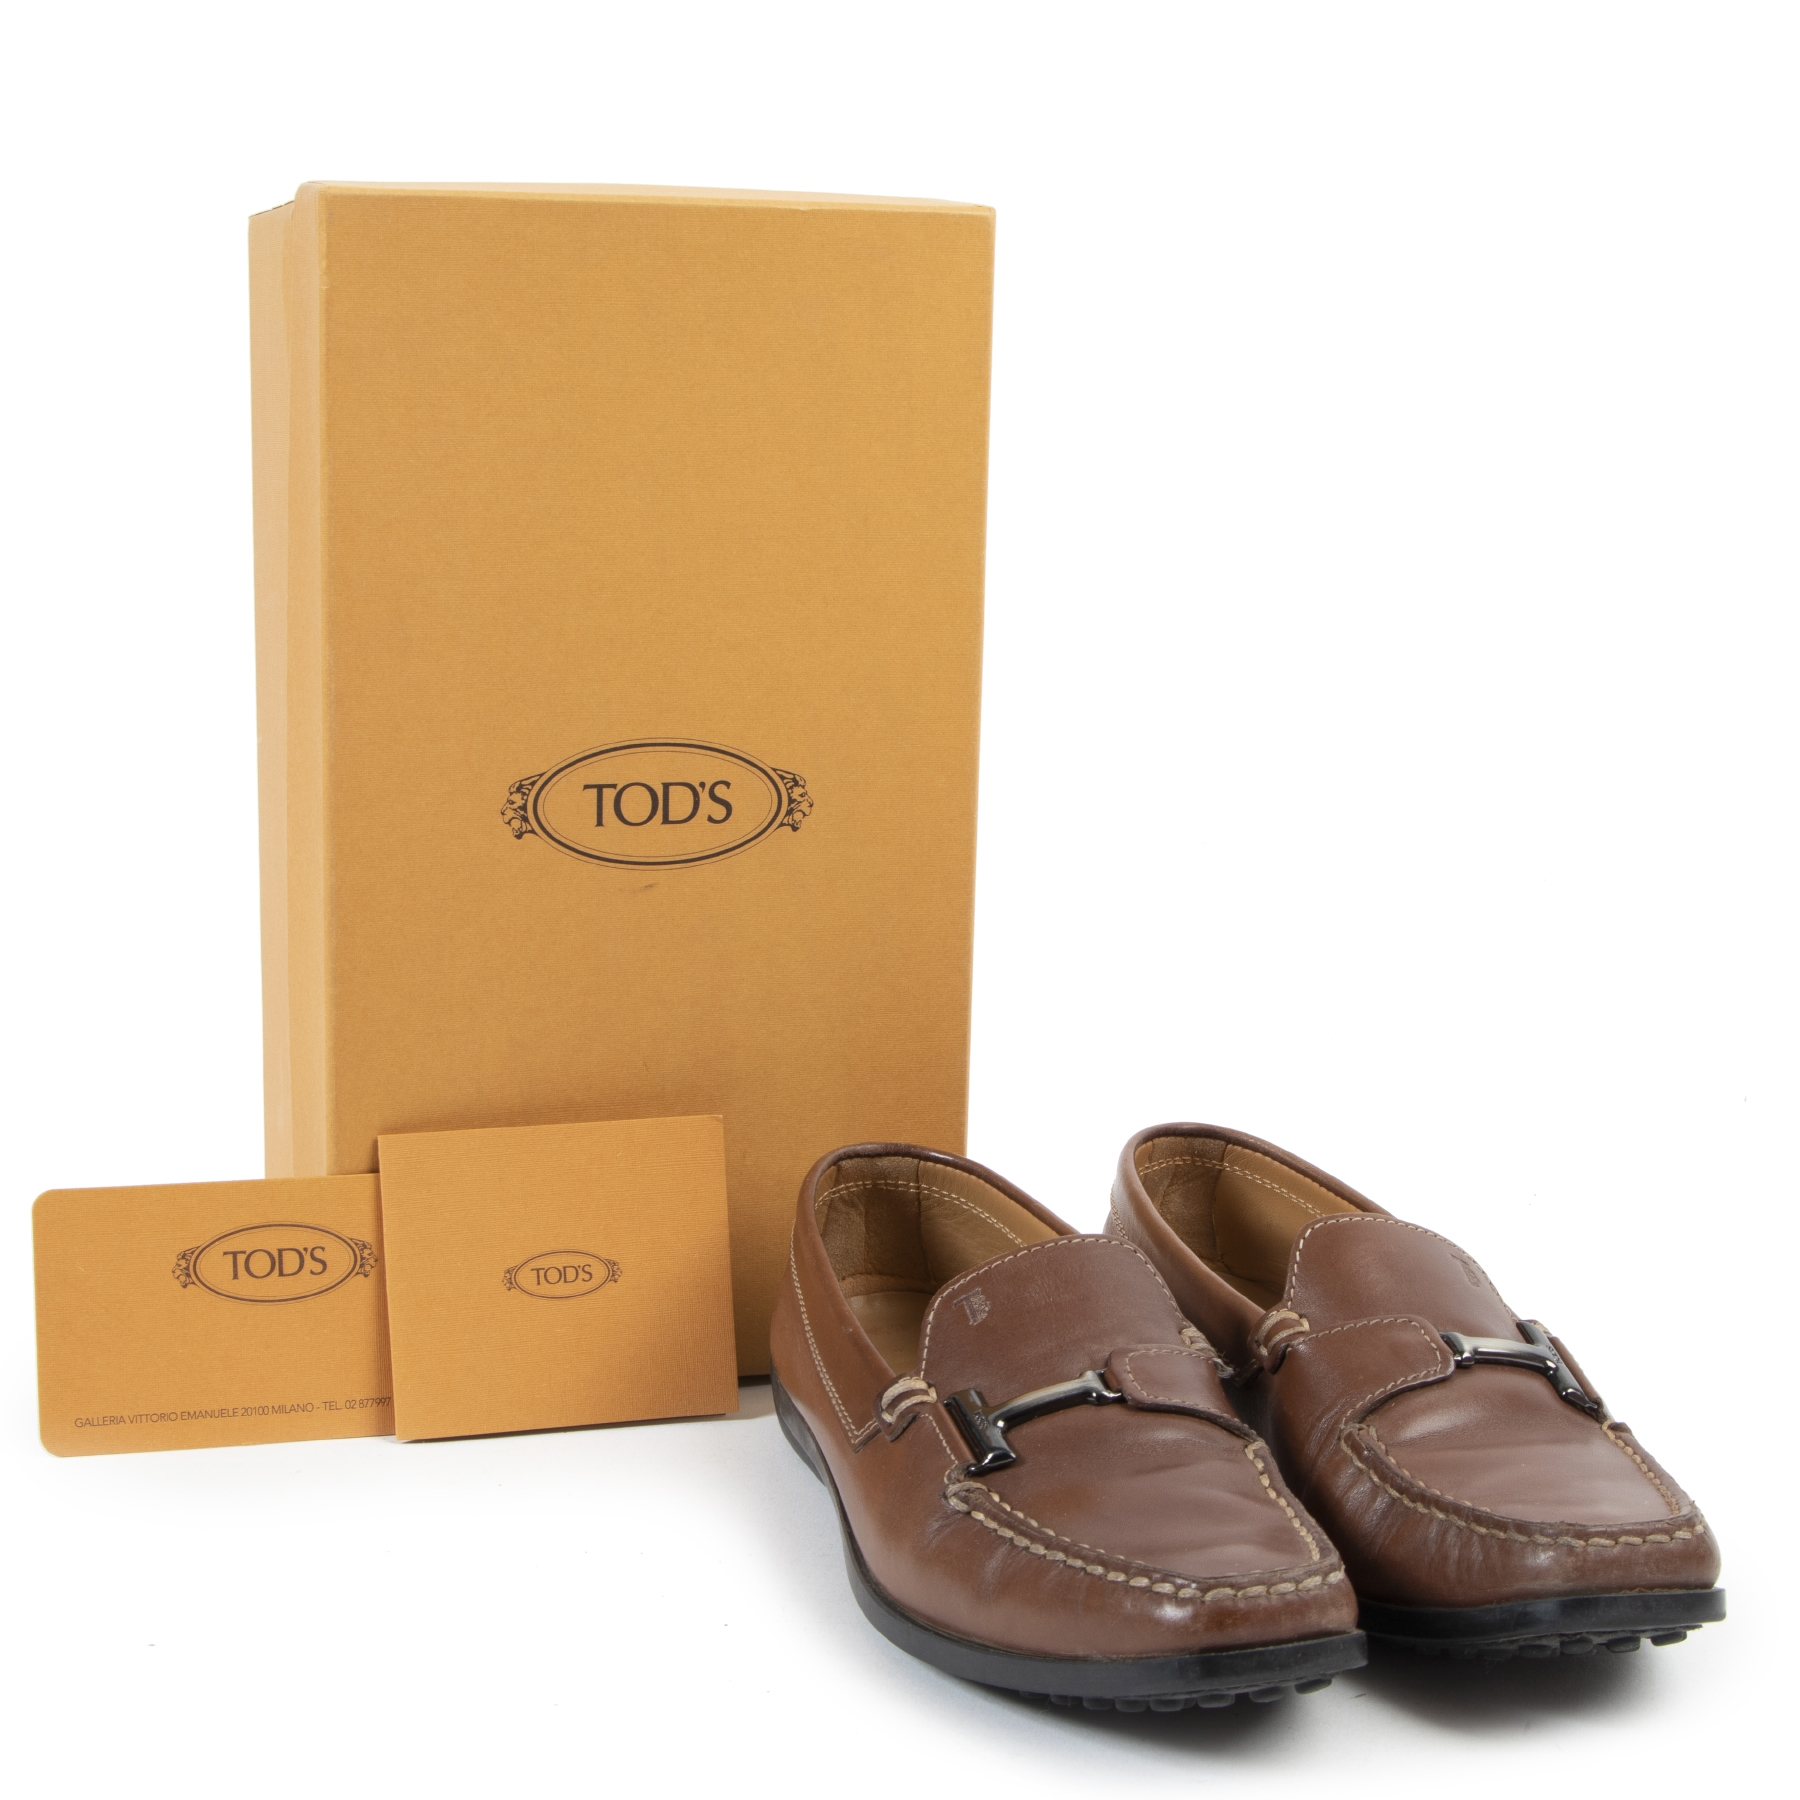 Buy preloved Tod's shoes at LabelLOV Antwerp.